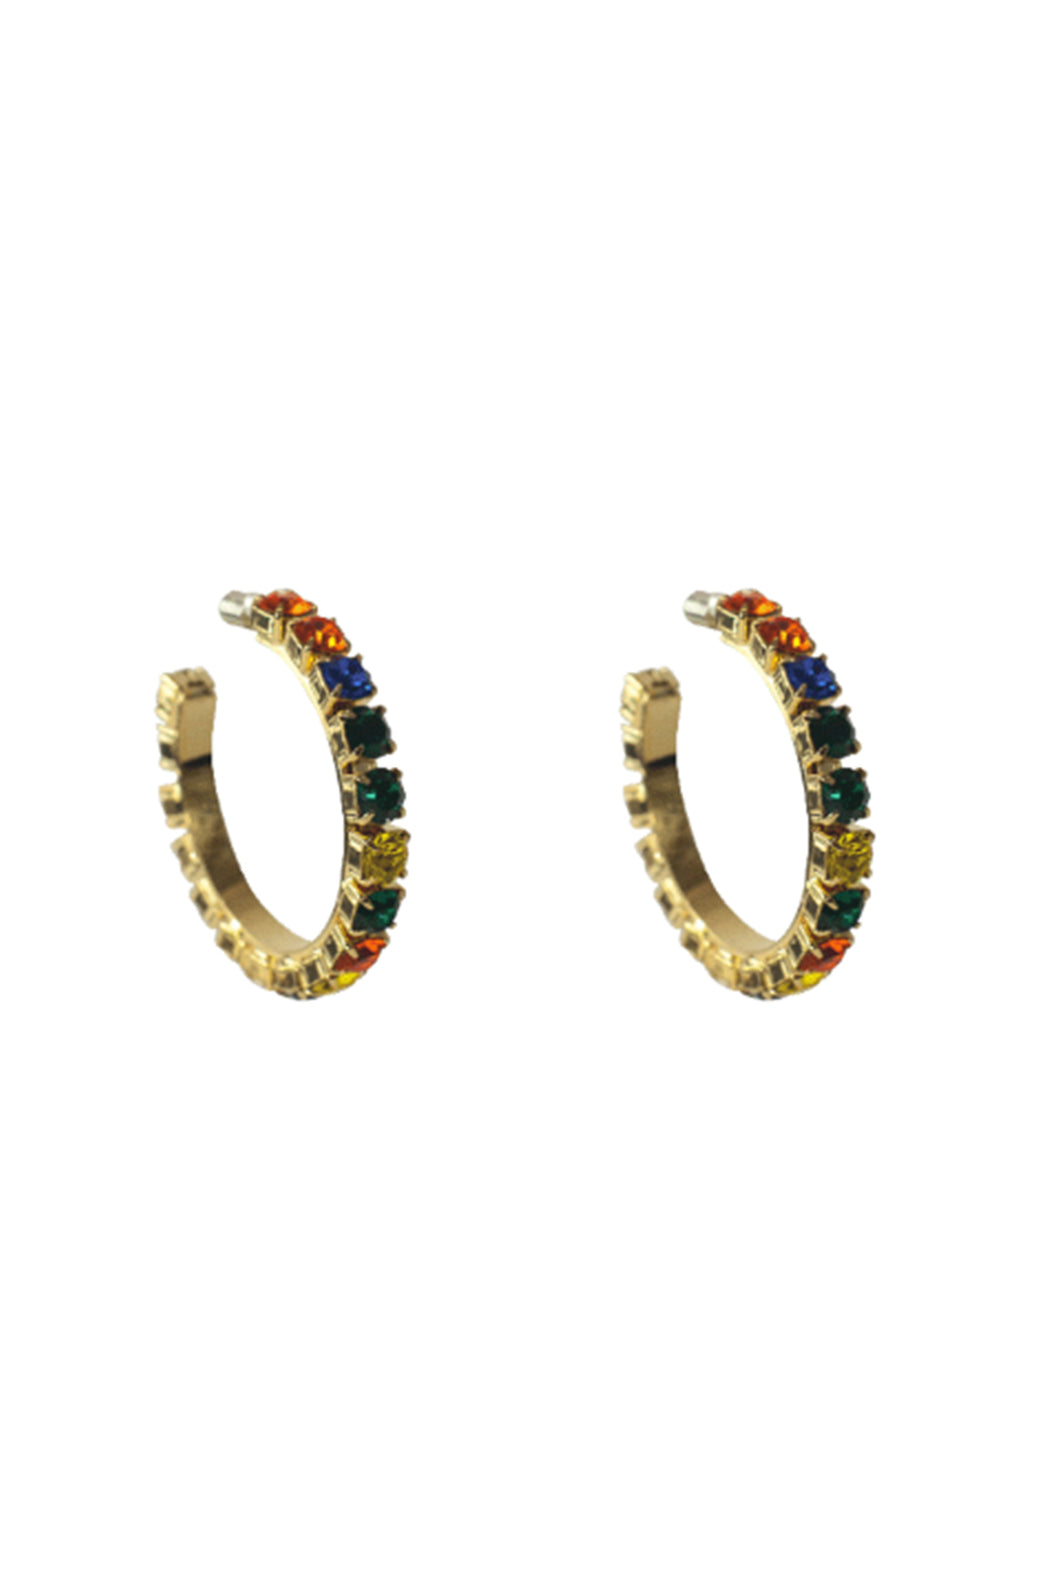 "2"" Medium Round Hoop Earrings"